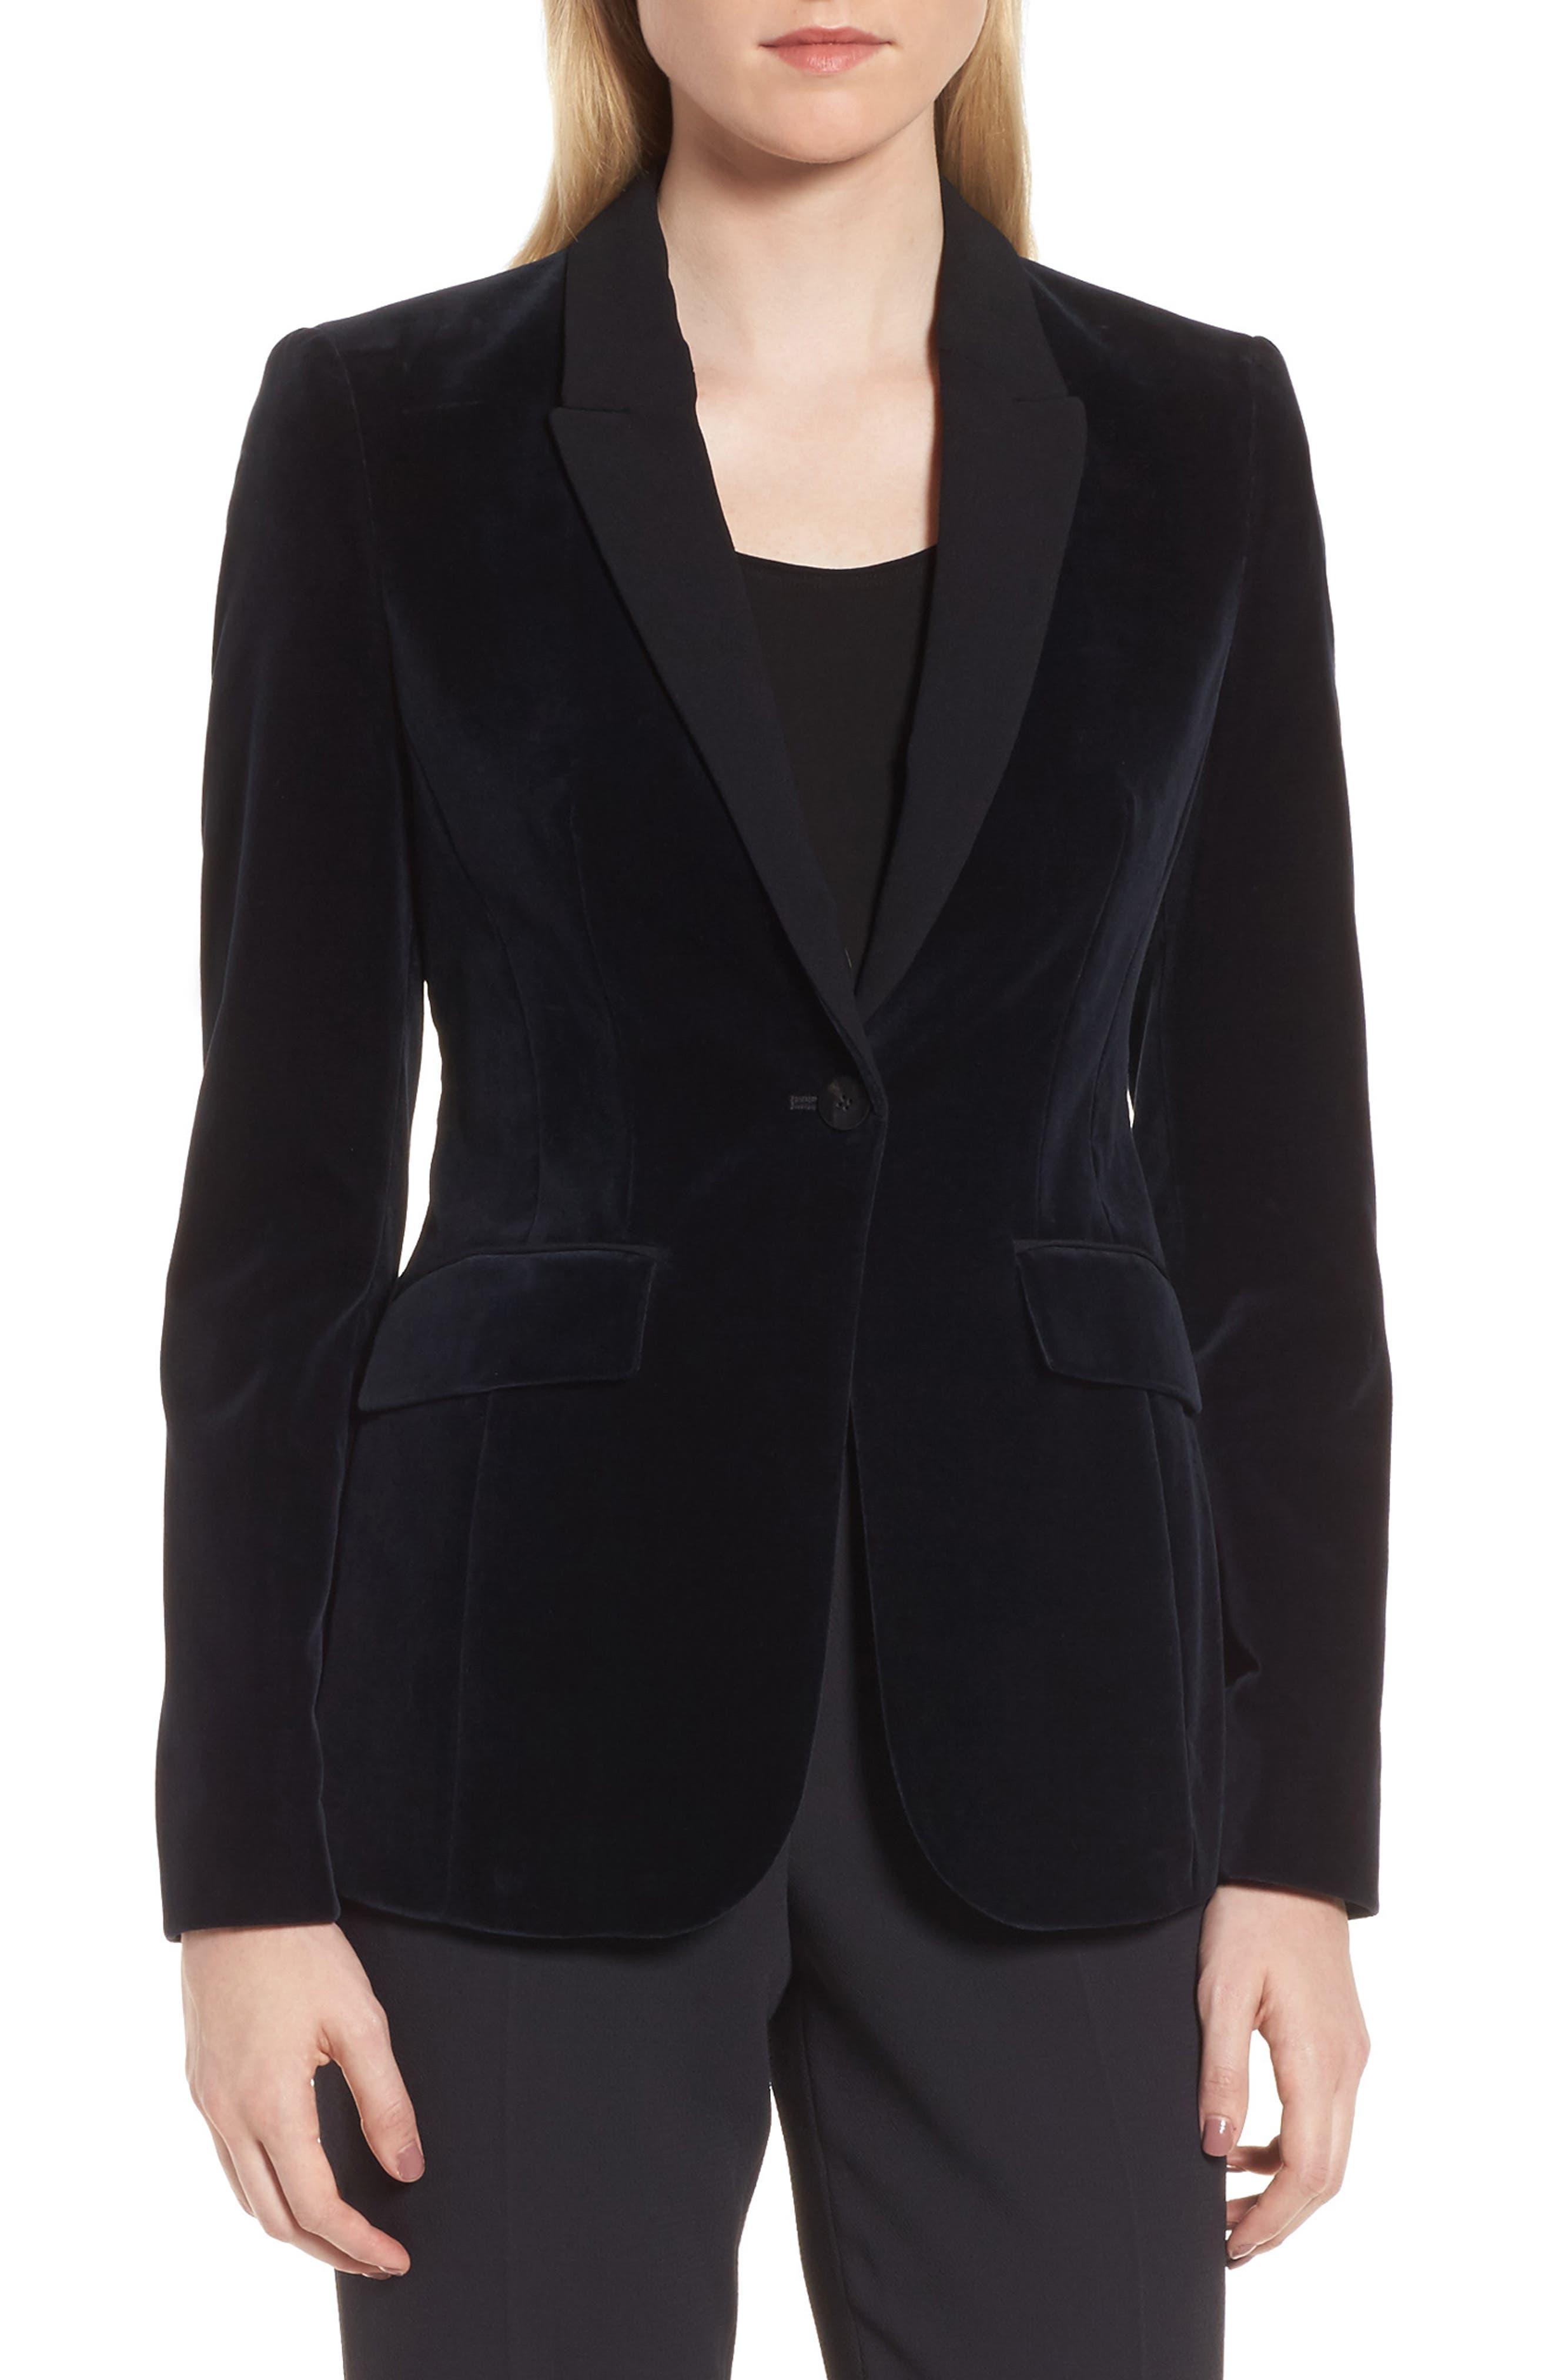 Jeronala Velvet Tuxedo Jacket,                         Main,                         color, Navy